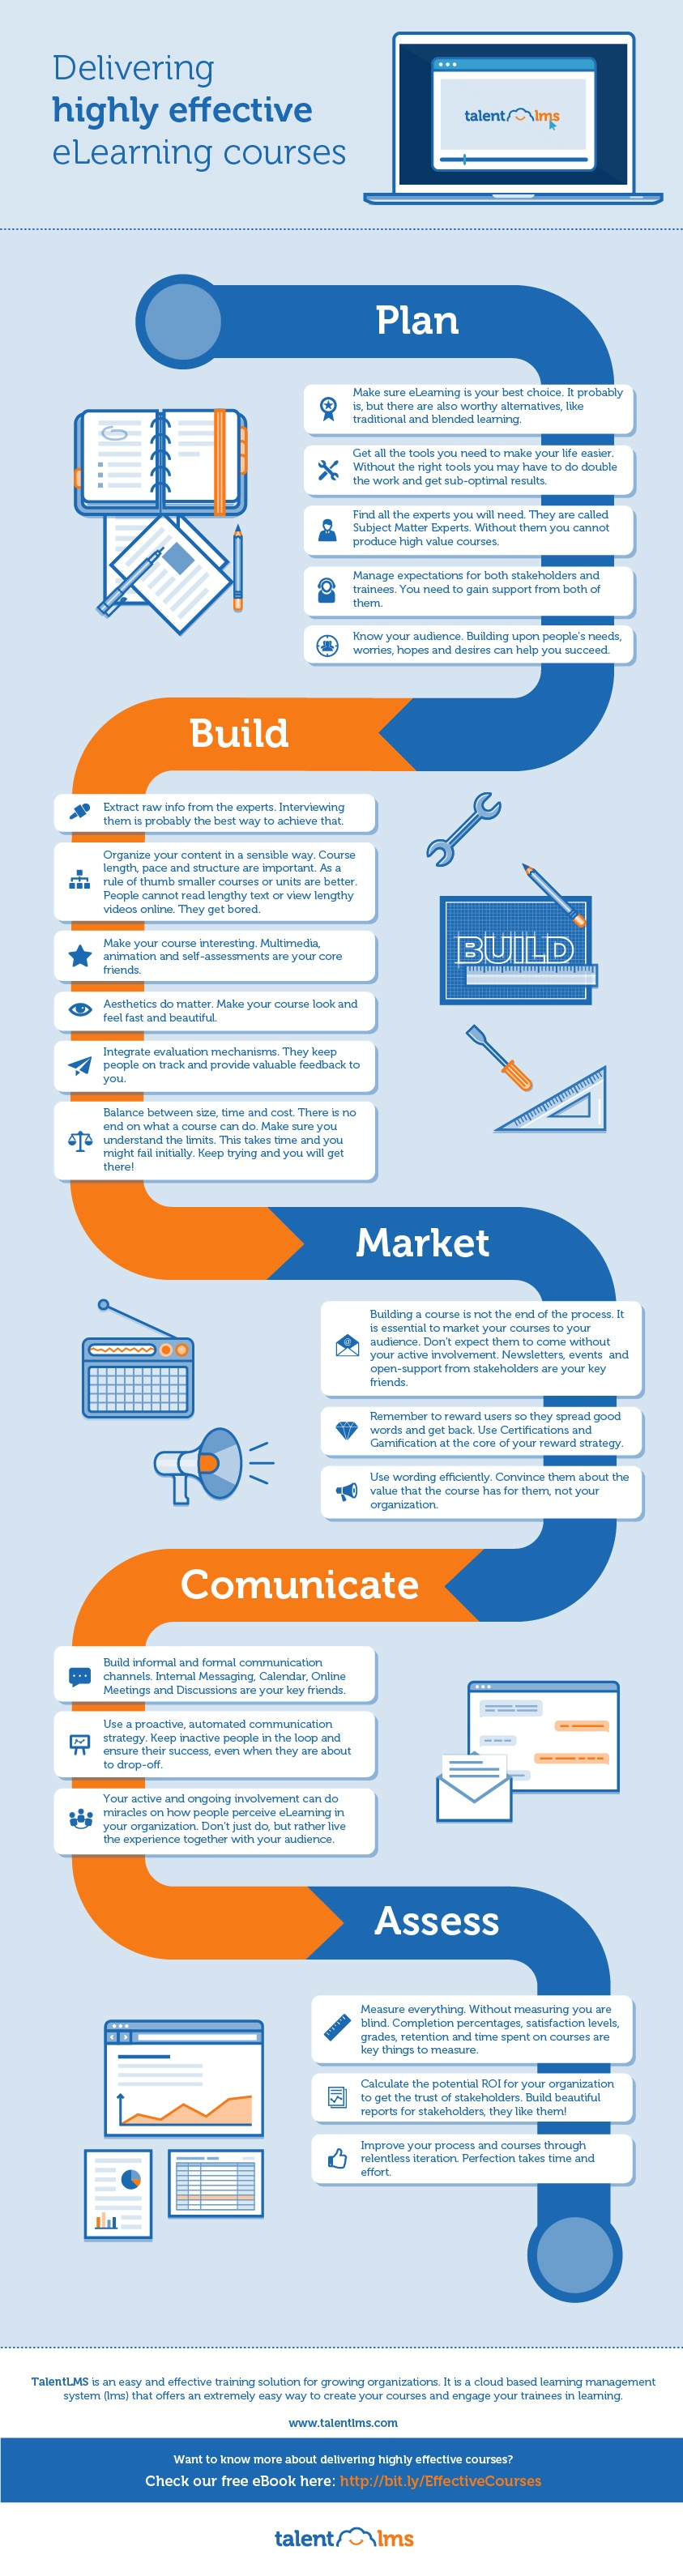 Delivering Highly Effective eLearning Courses Infographic